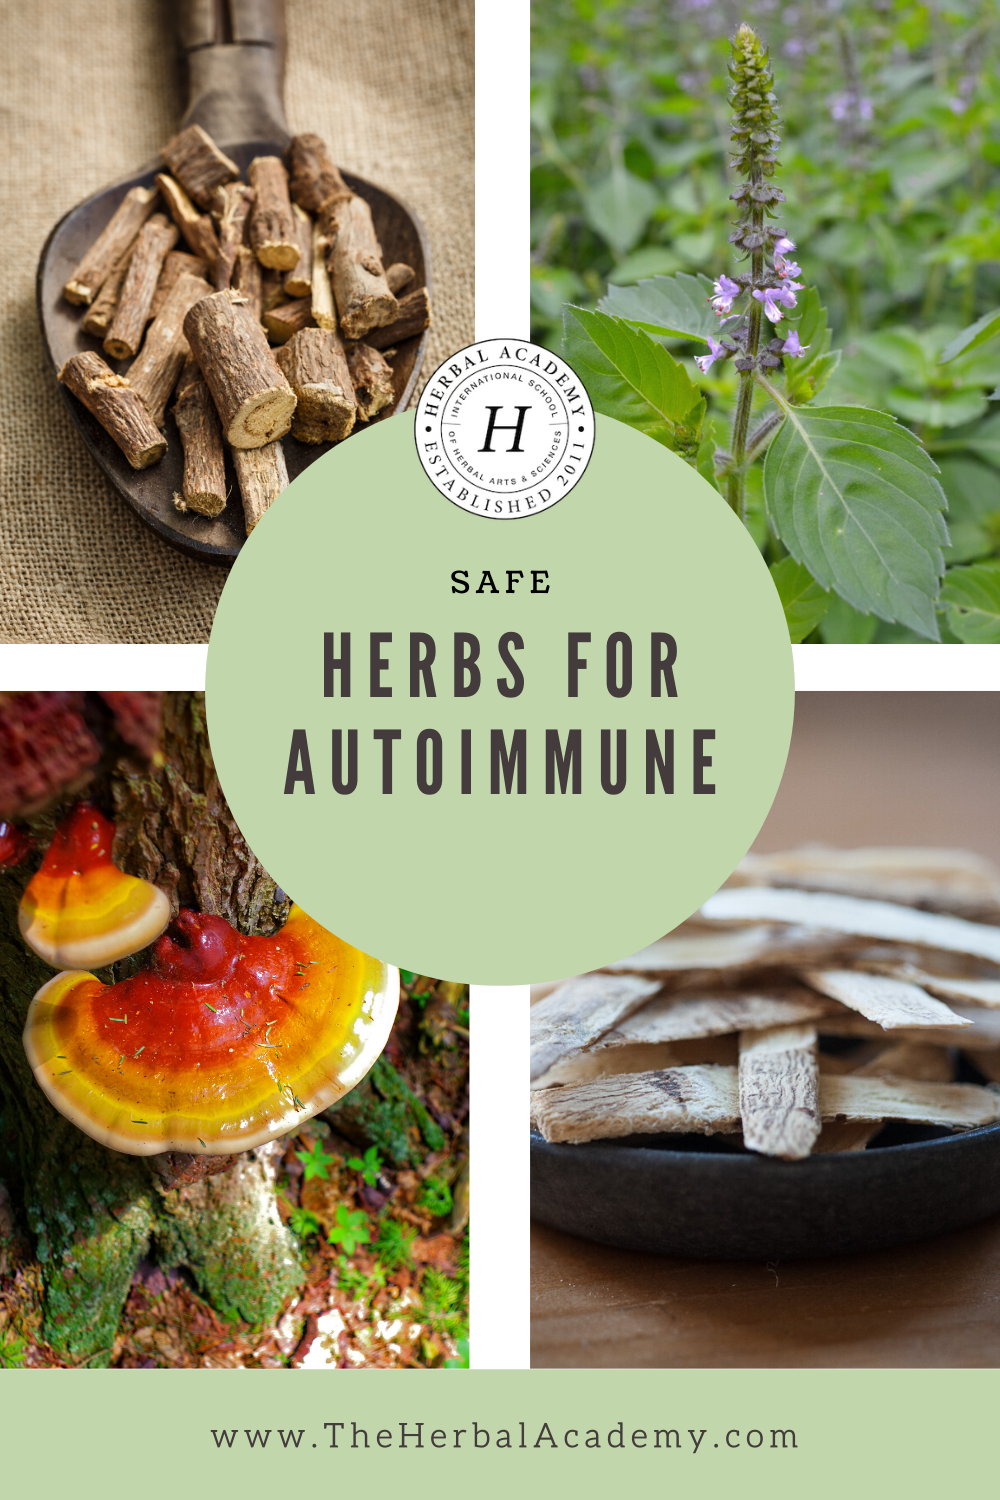 Safe Antiviral Herbs for Autoimmune Disease | Herbal Academy | Finding immune-supportive, antiviral herbs for autoimmune disease requires an extra layer of care and research by the individual or practitioner.